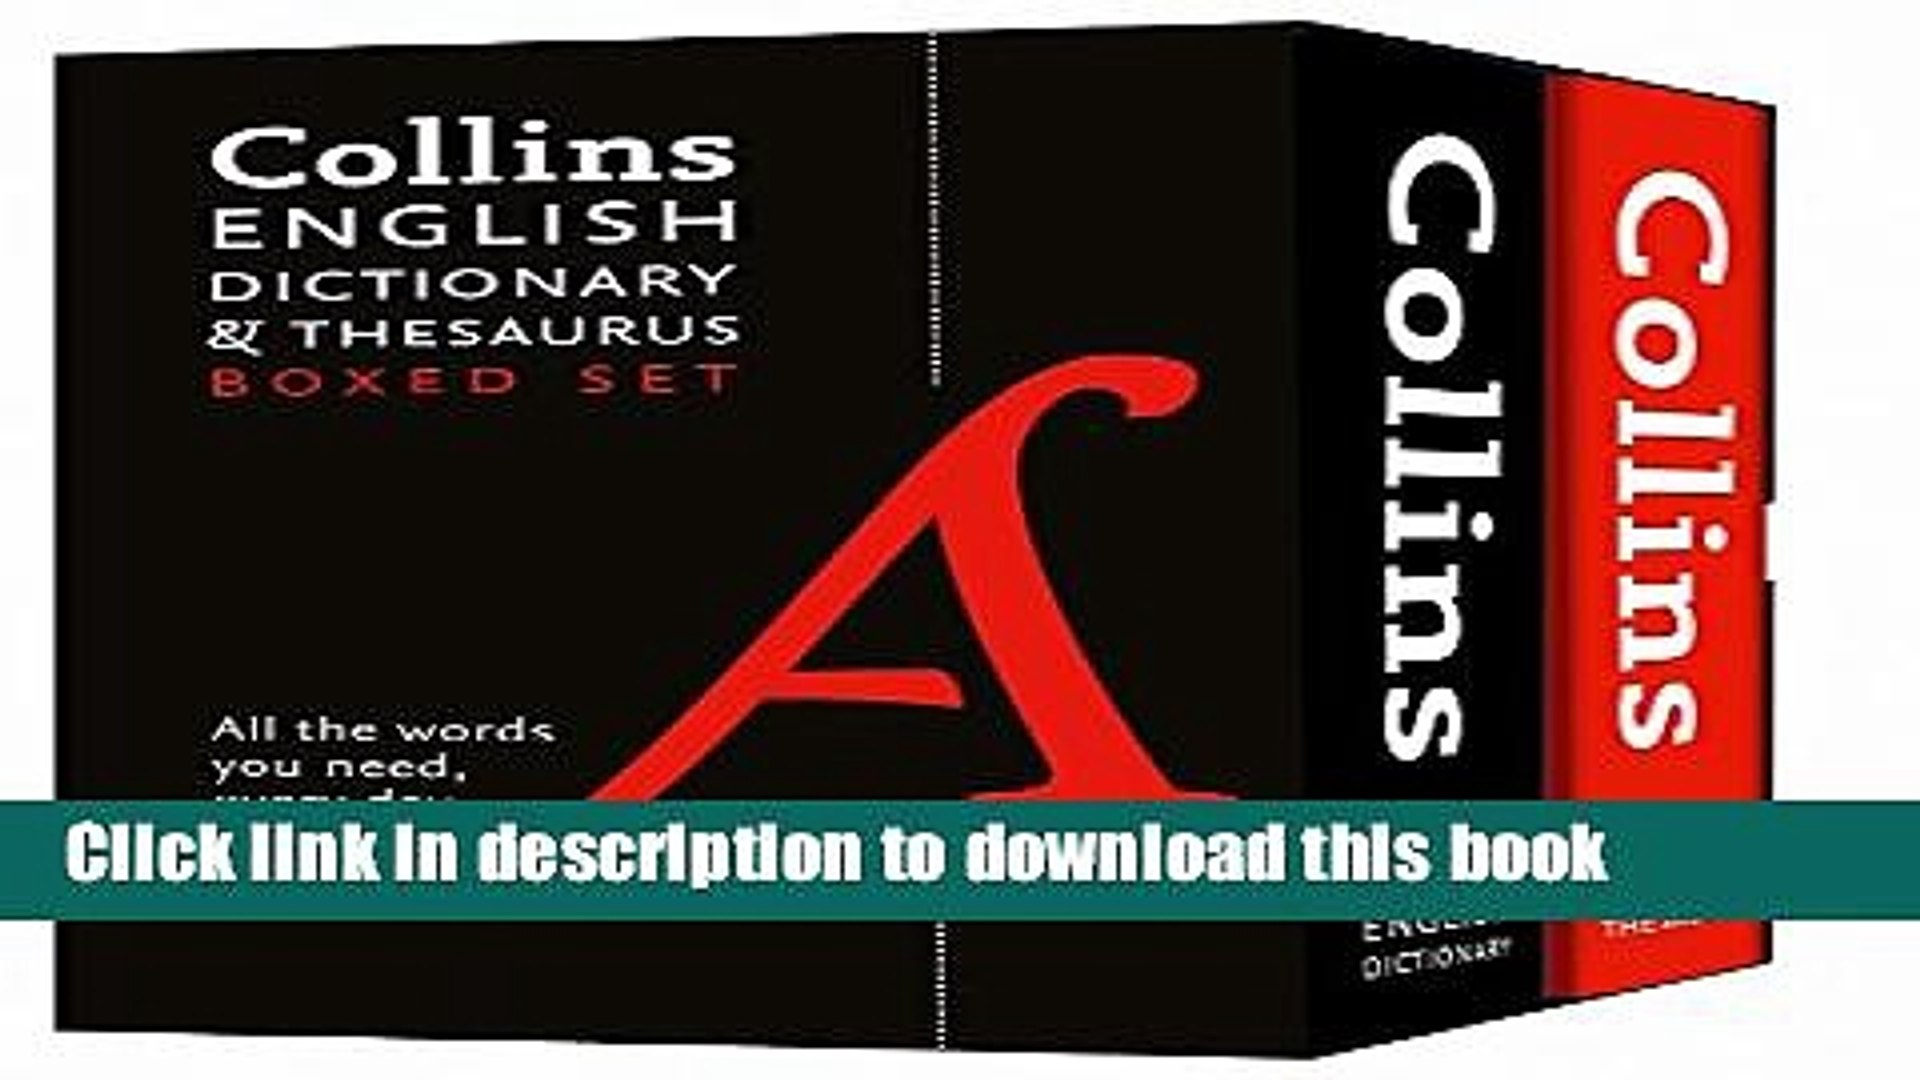 [Popular Books] Collins English Dictionary and Thesaurus Set Full Online